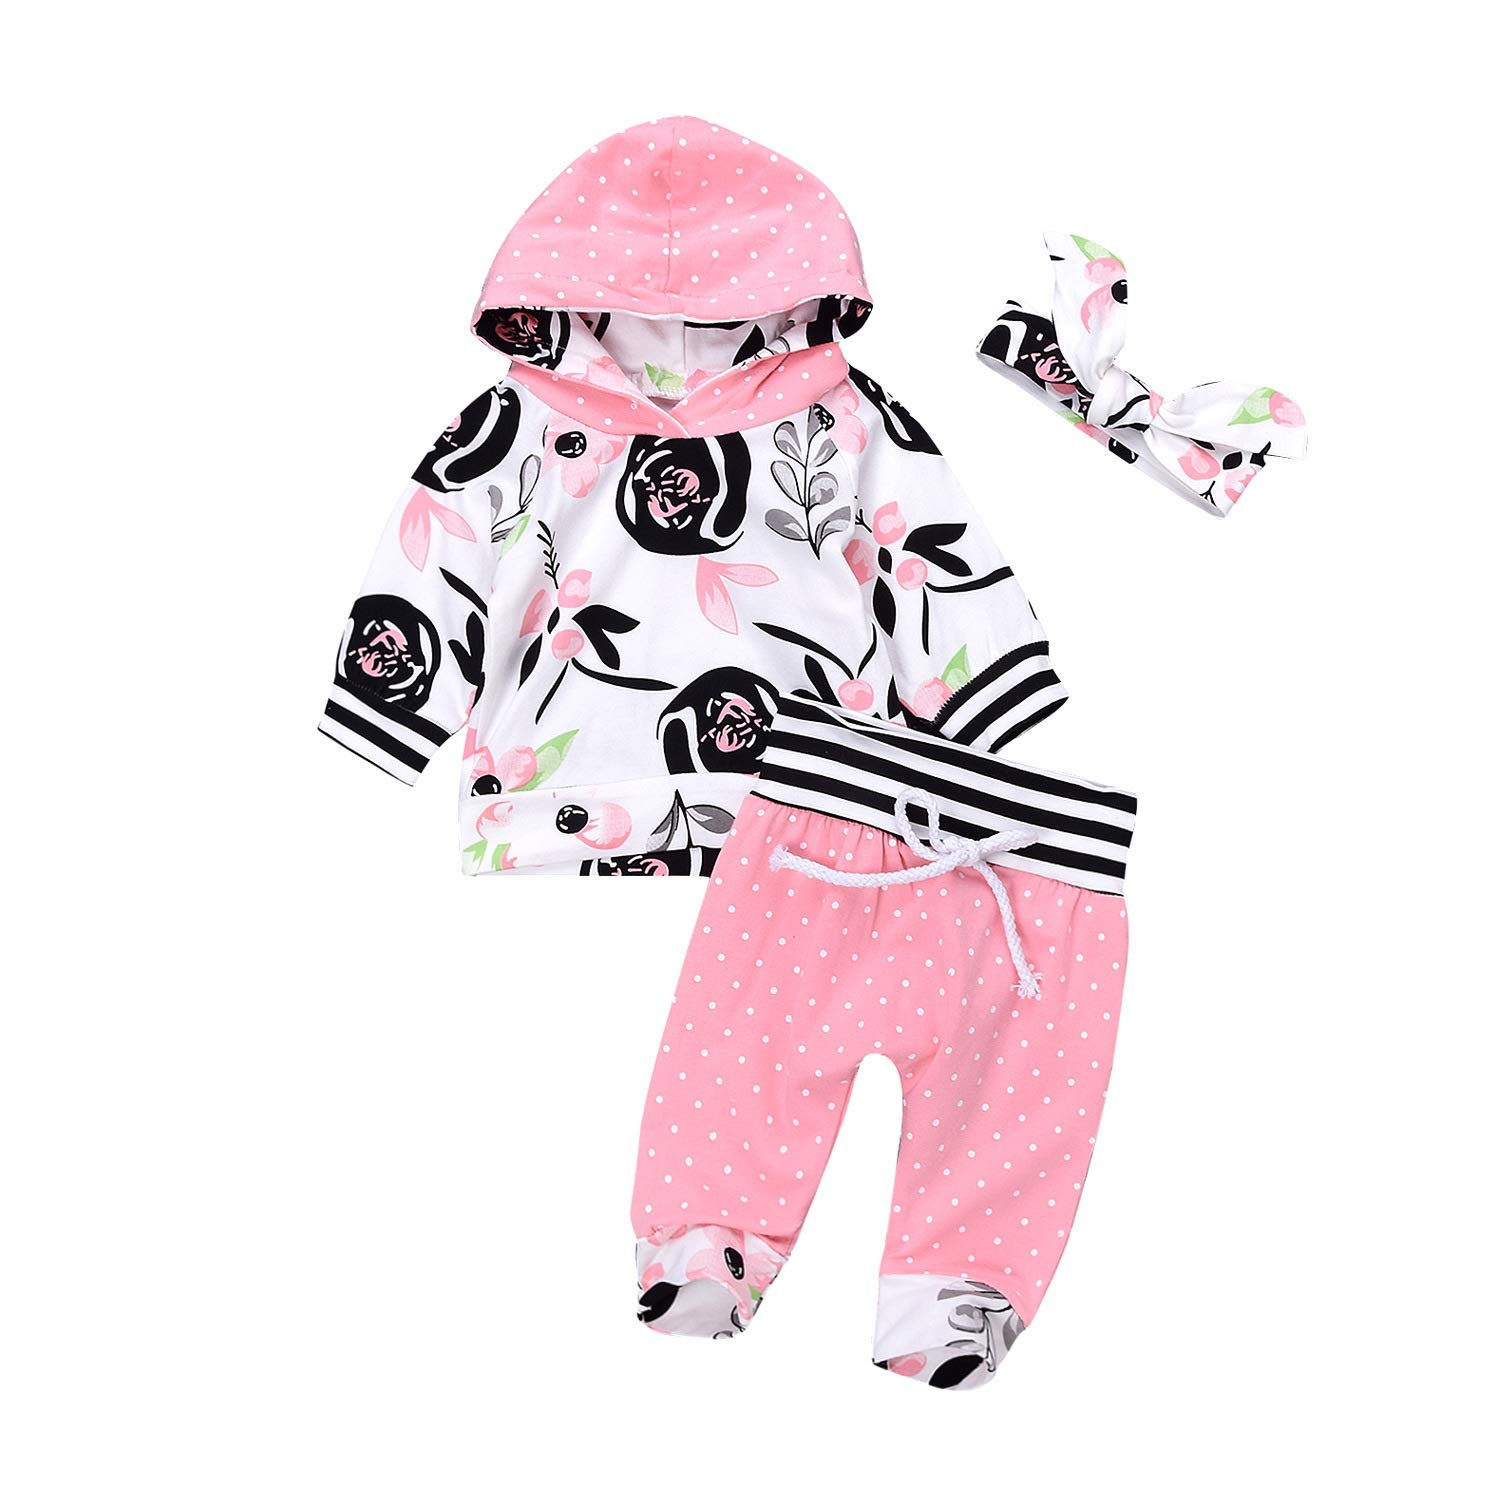 Floral Pant Set Leggings 2 Piece Outfits Askwind Baby Girls Floral Hoodie